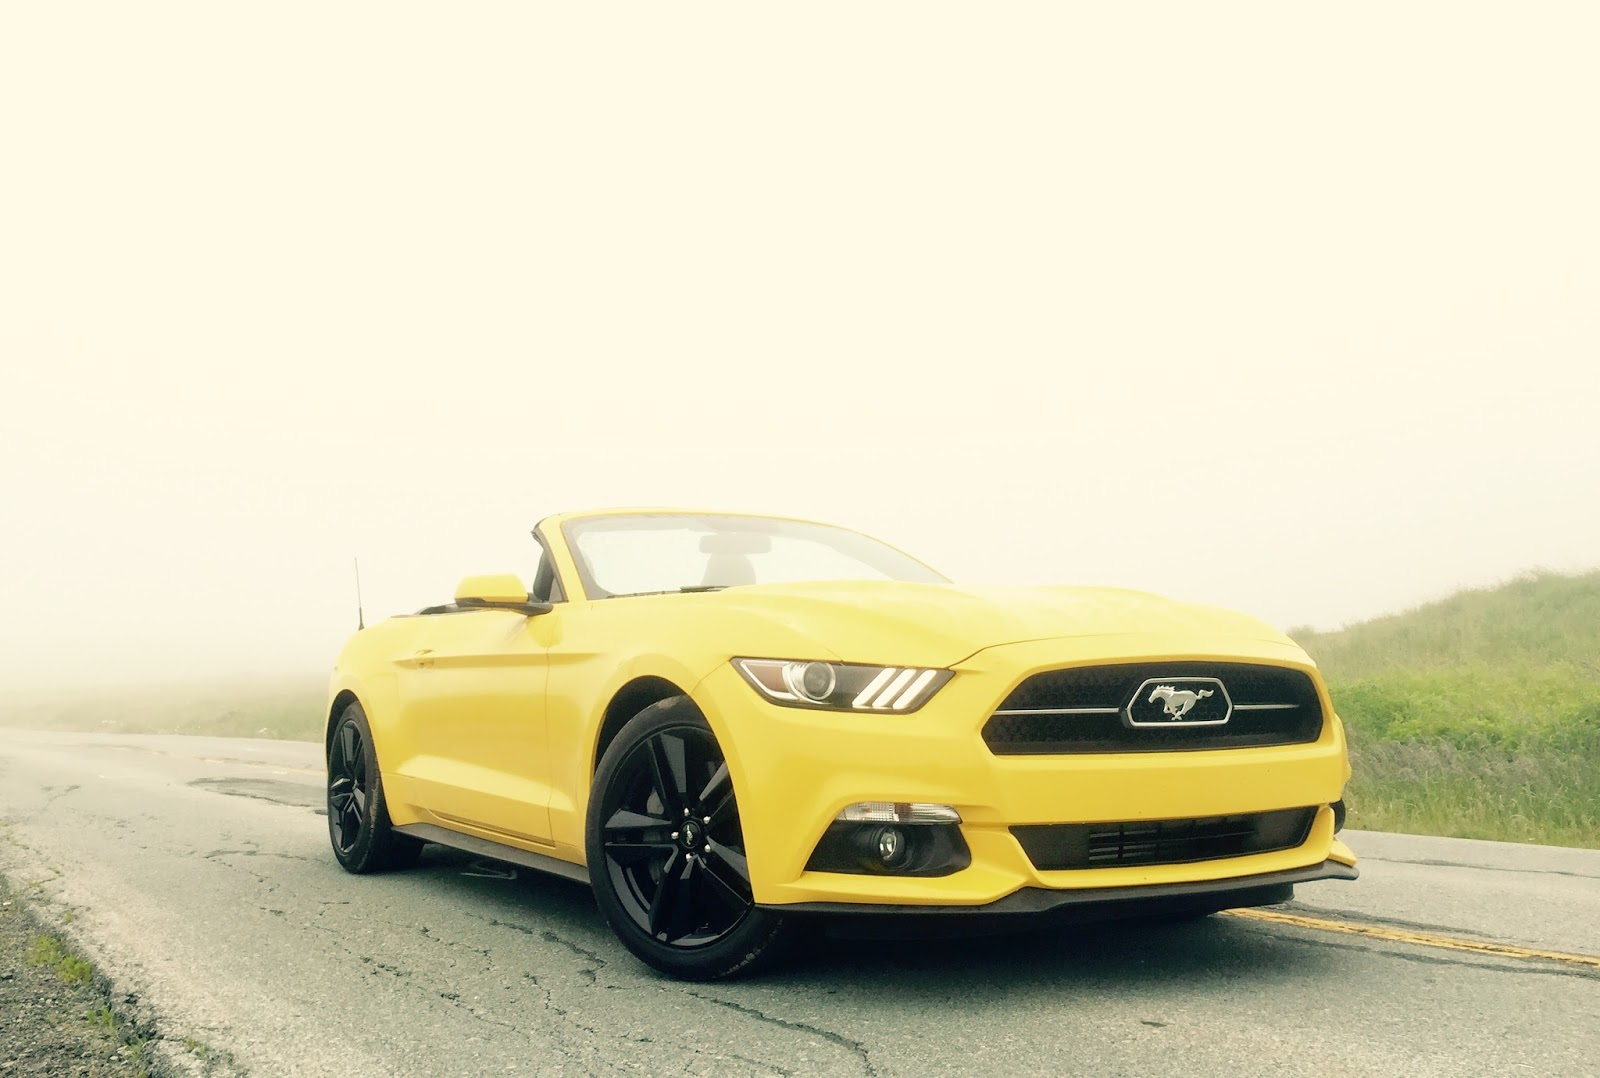 2015 Ford Mustang Ecoboost Convertible Review Great Car With This Yellow Front